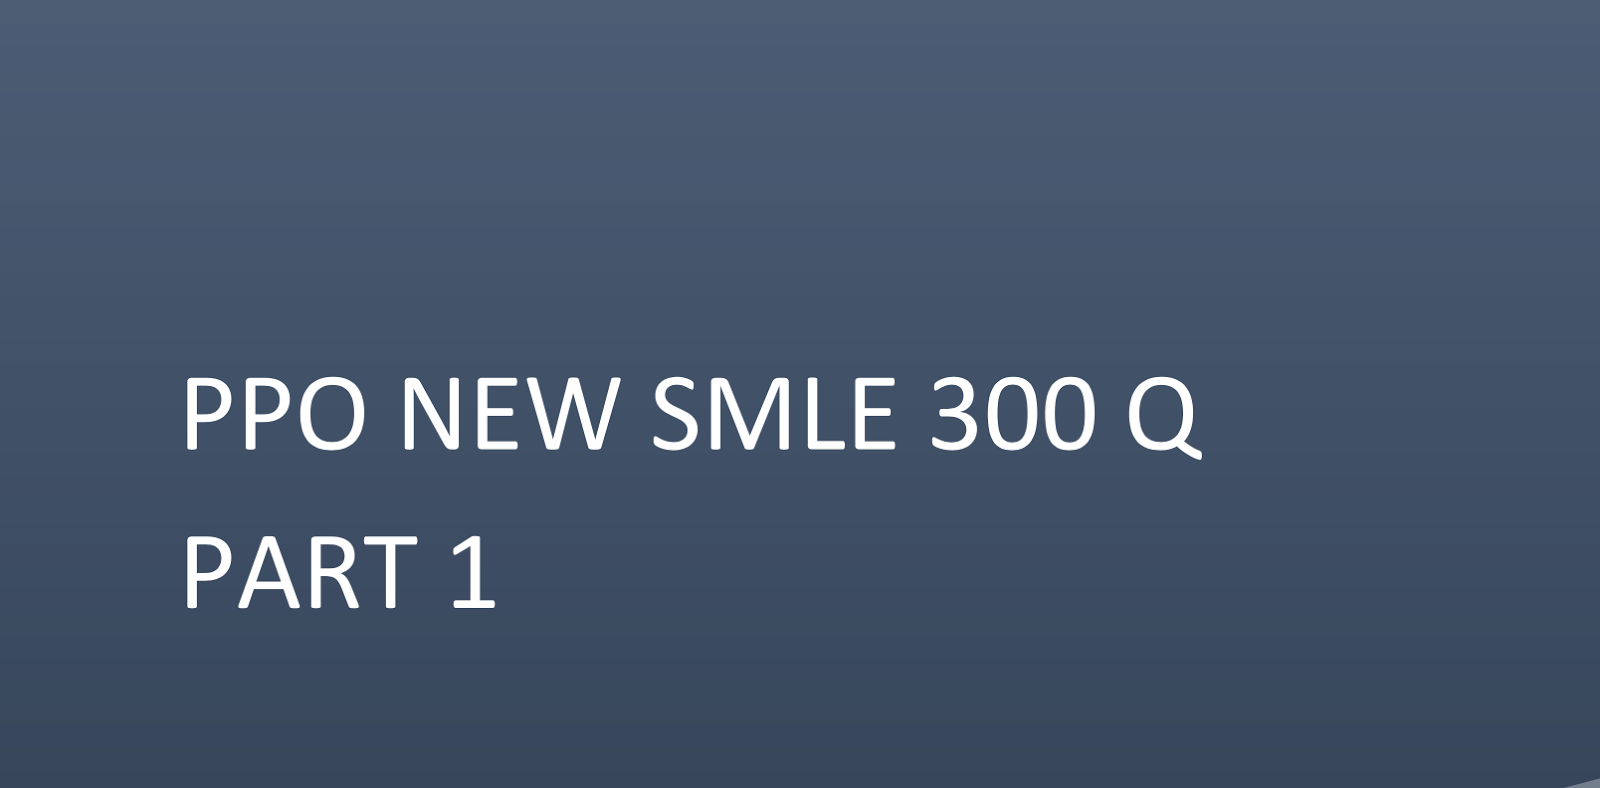 """#SMLE Questions from August October ظ""""ظ'ط·ط© ط§ظ""""ط´ط§ط´ط© ظ،ظ¤ظ£ظ©-ظظ¢-ظظ، ظپظٹ ظ¨.ظ،ظ،.ظ£ظ§ ظ….png"""